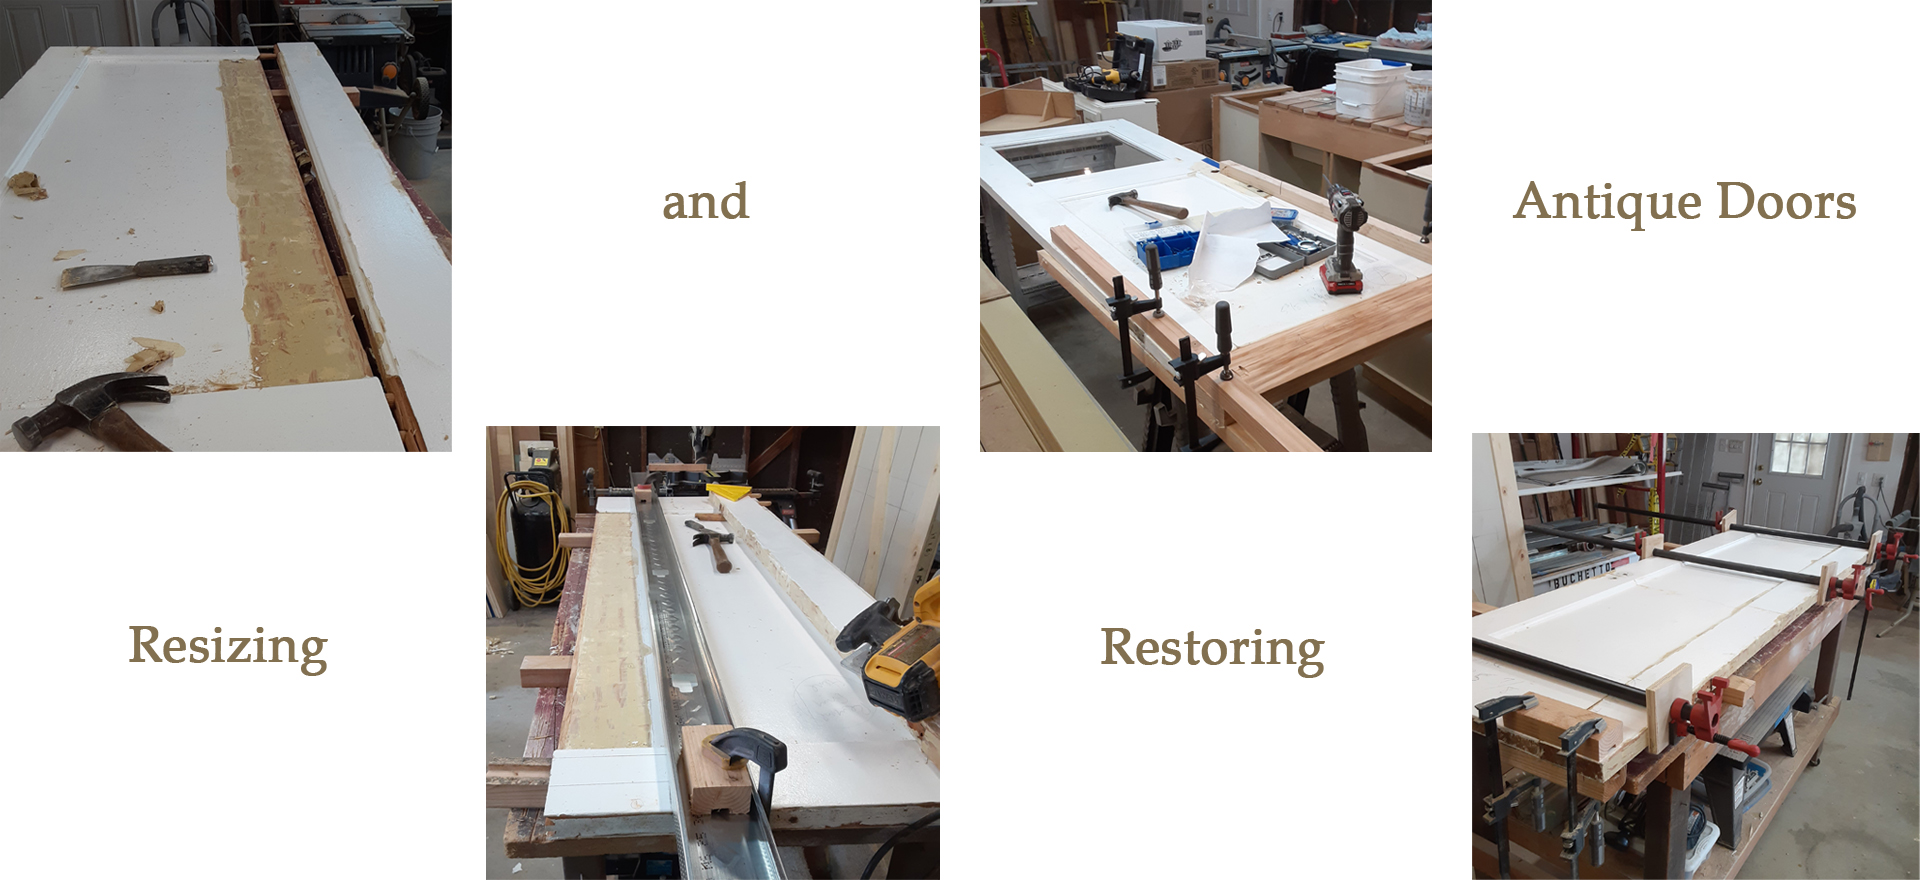 Resizing Antique Doors